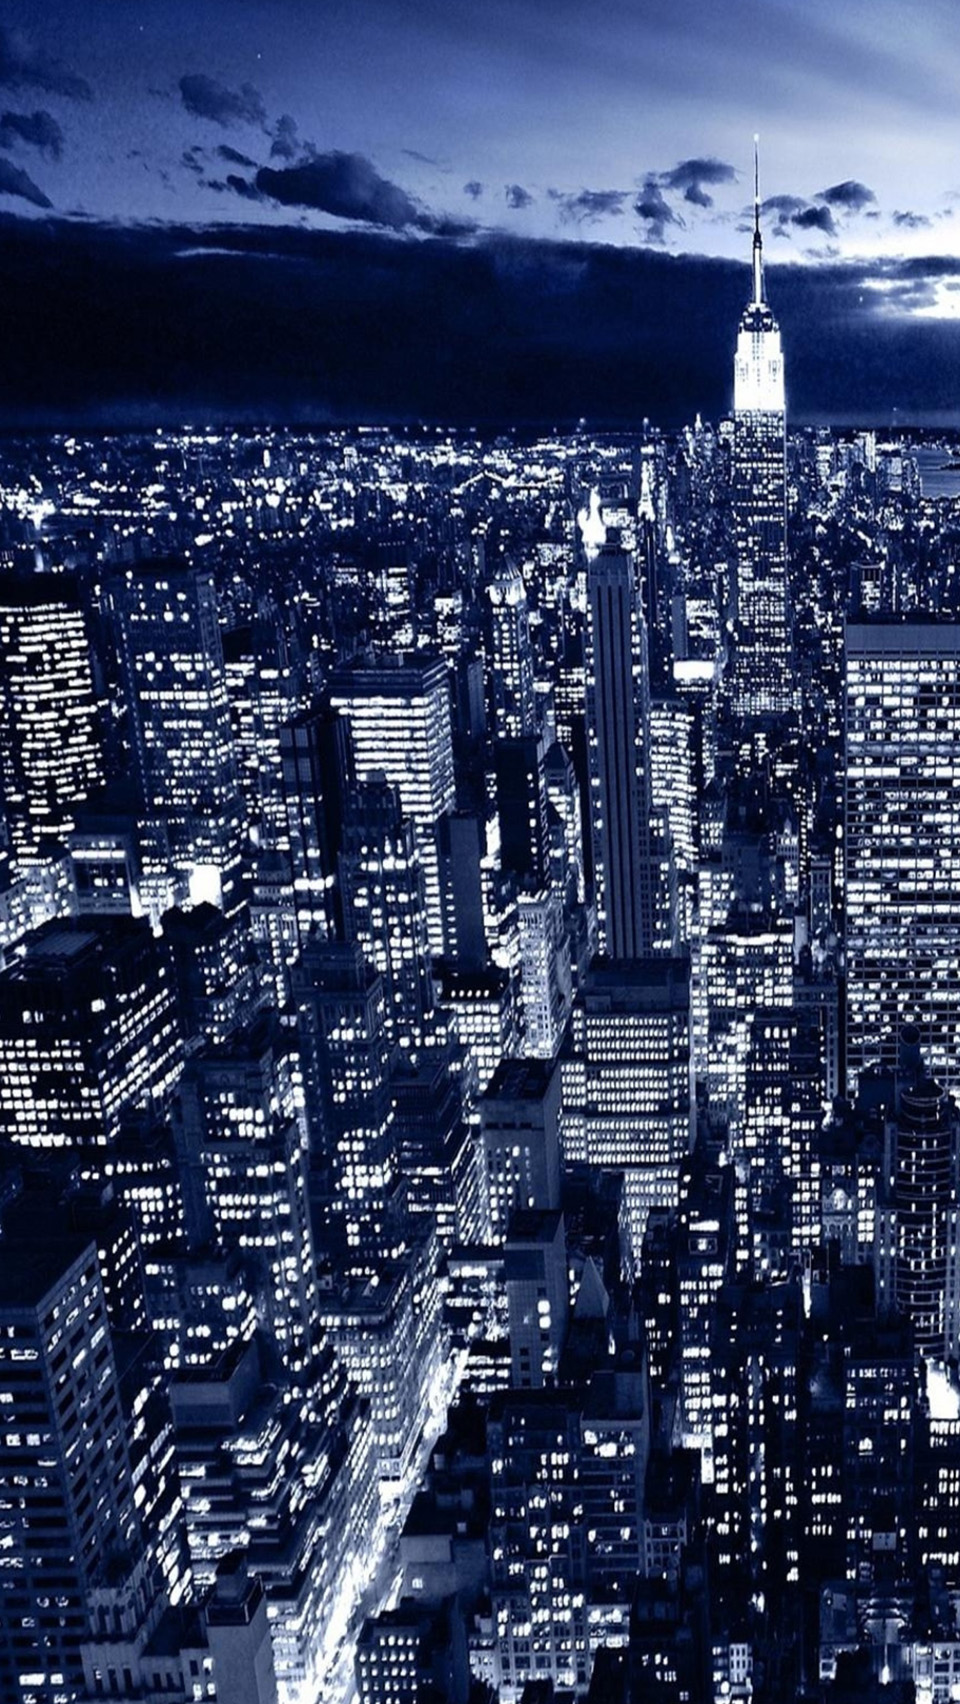 iphone 6 wallpapers city 223 look for the option to download iphone 6 960x1704